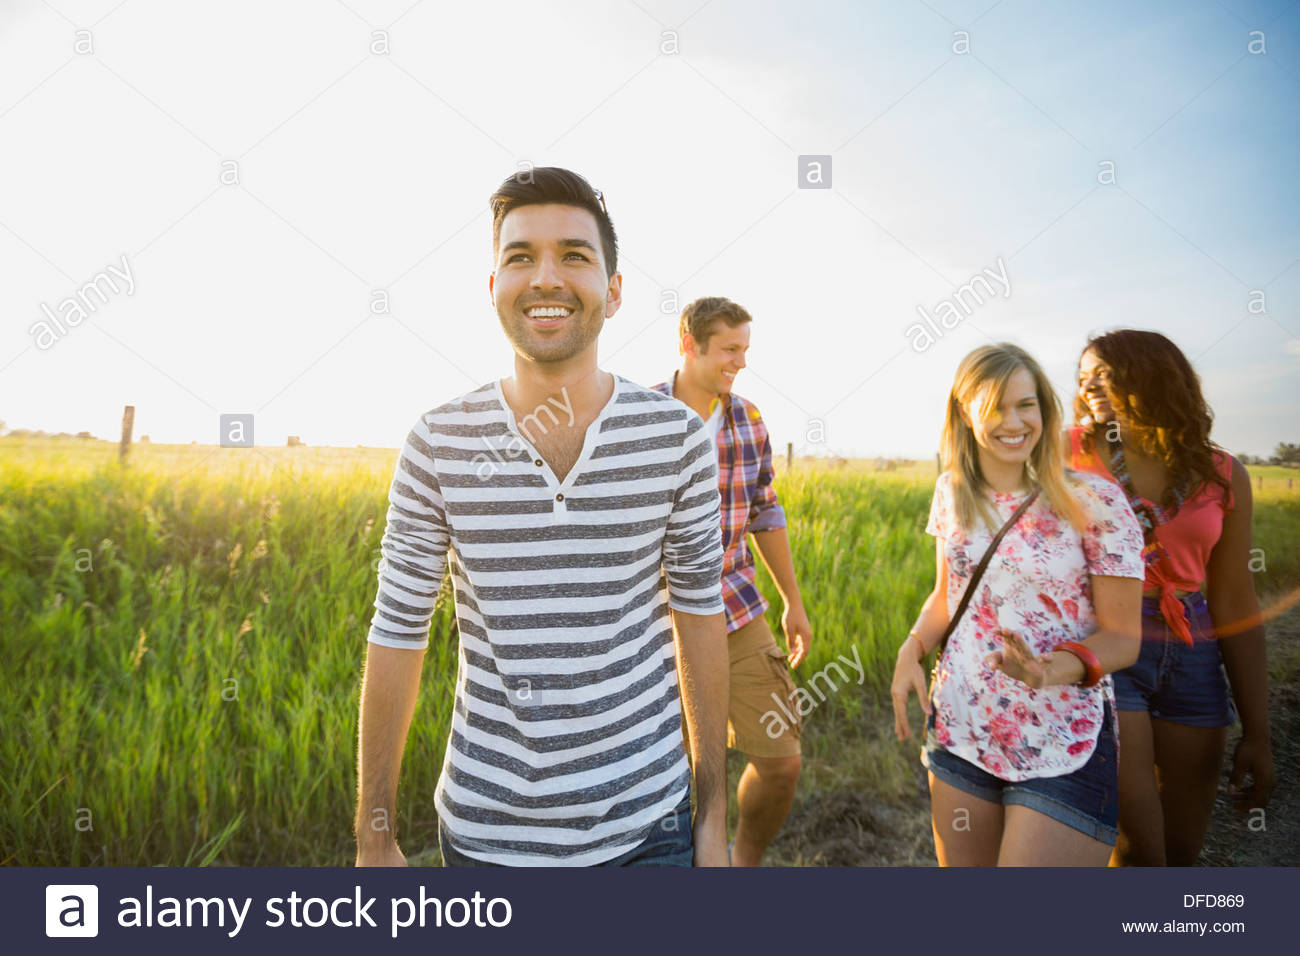 Friends walking along country road - Stock Image